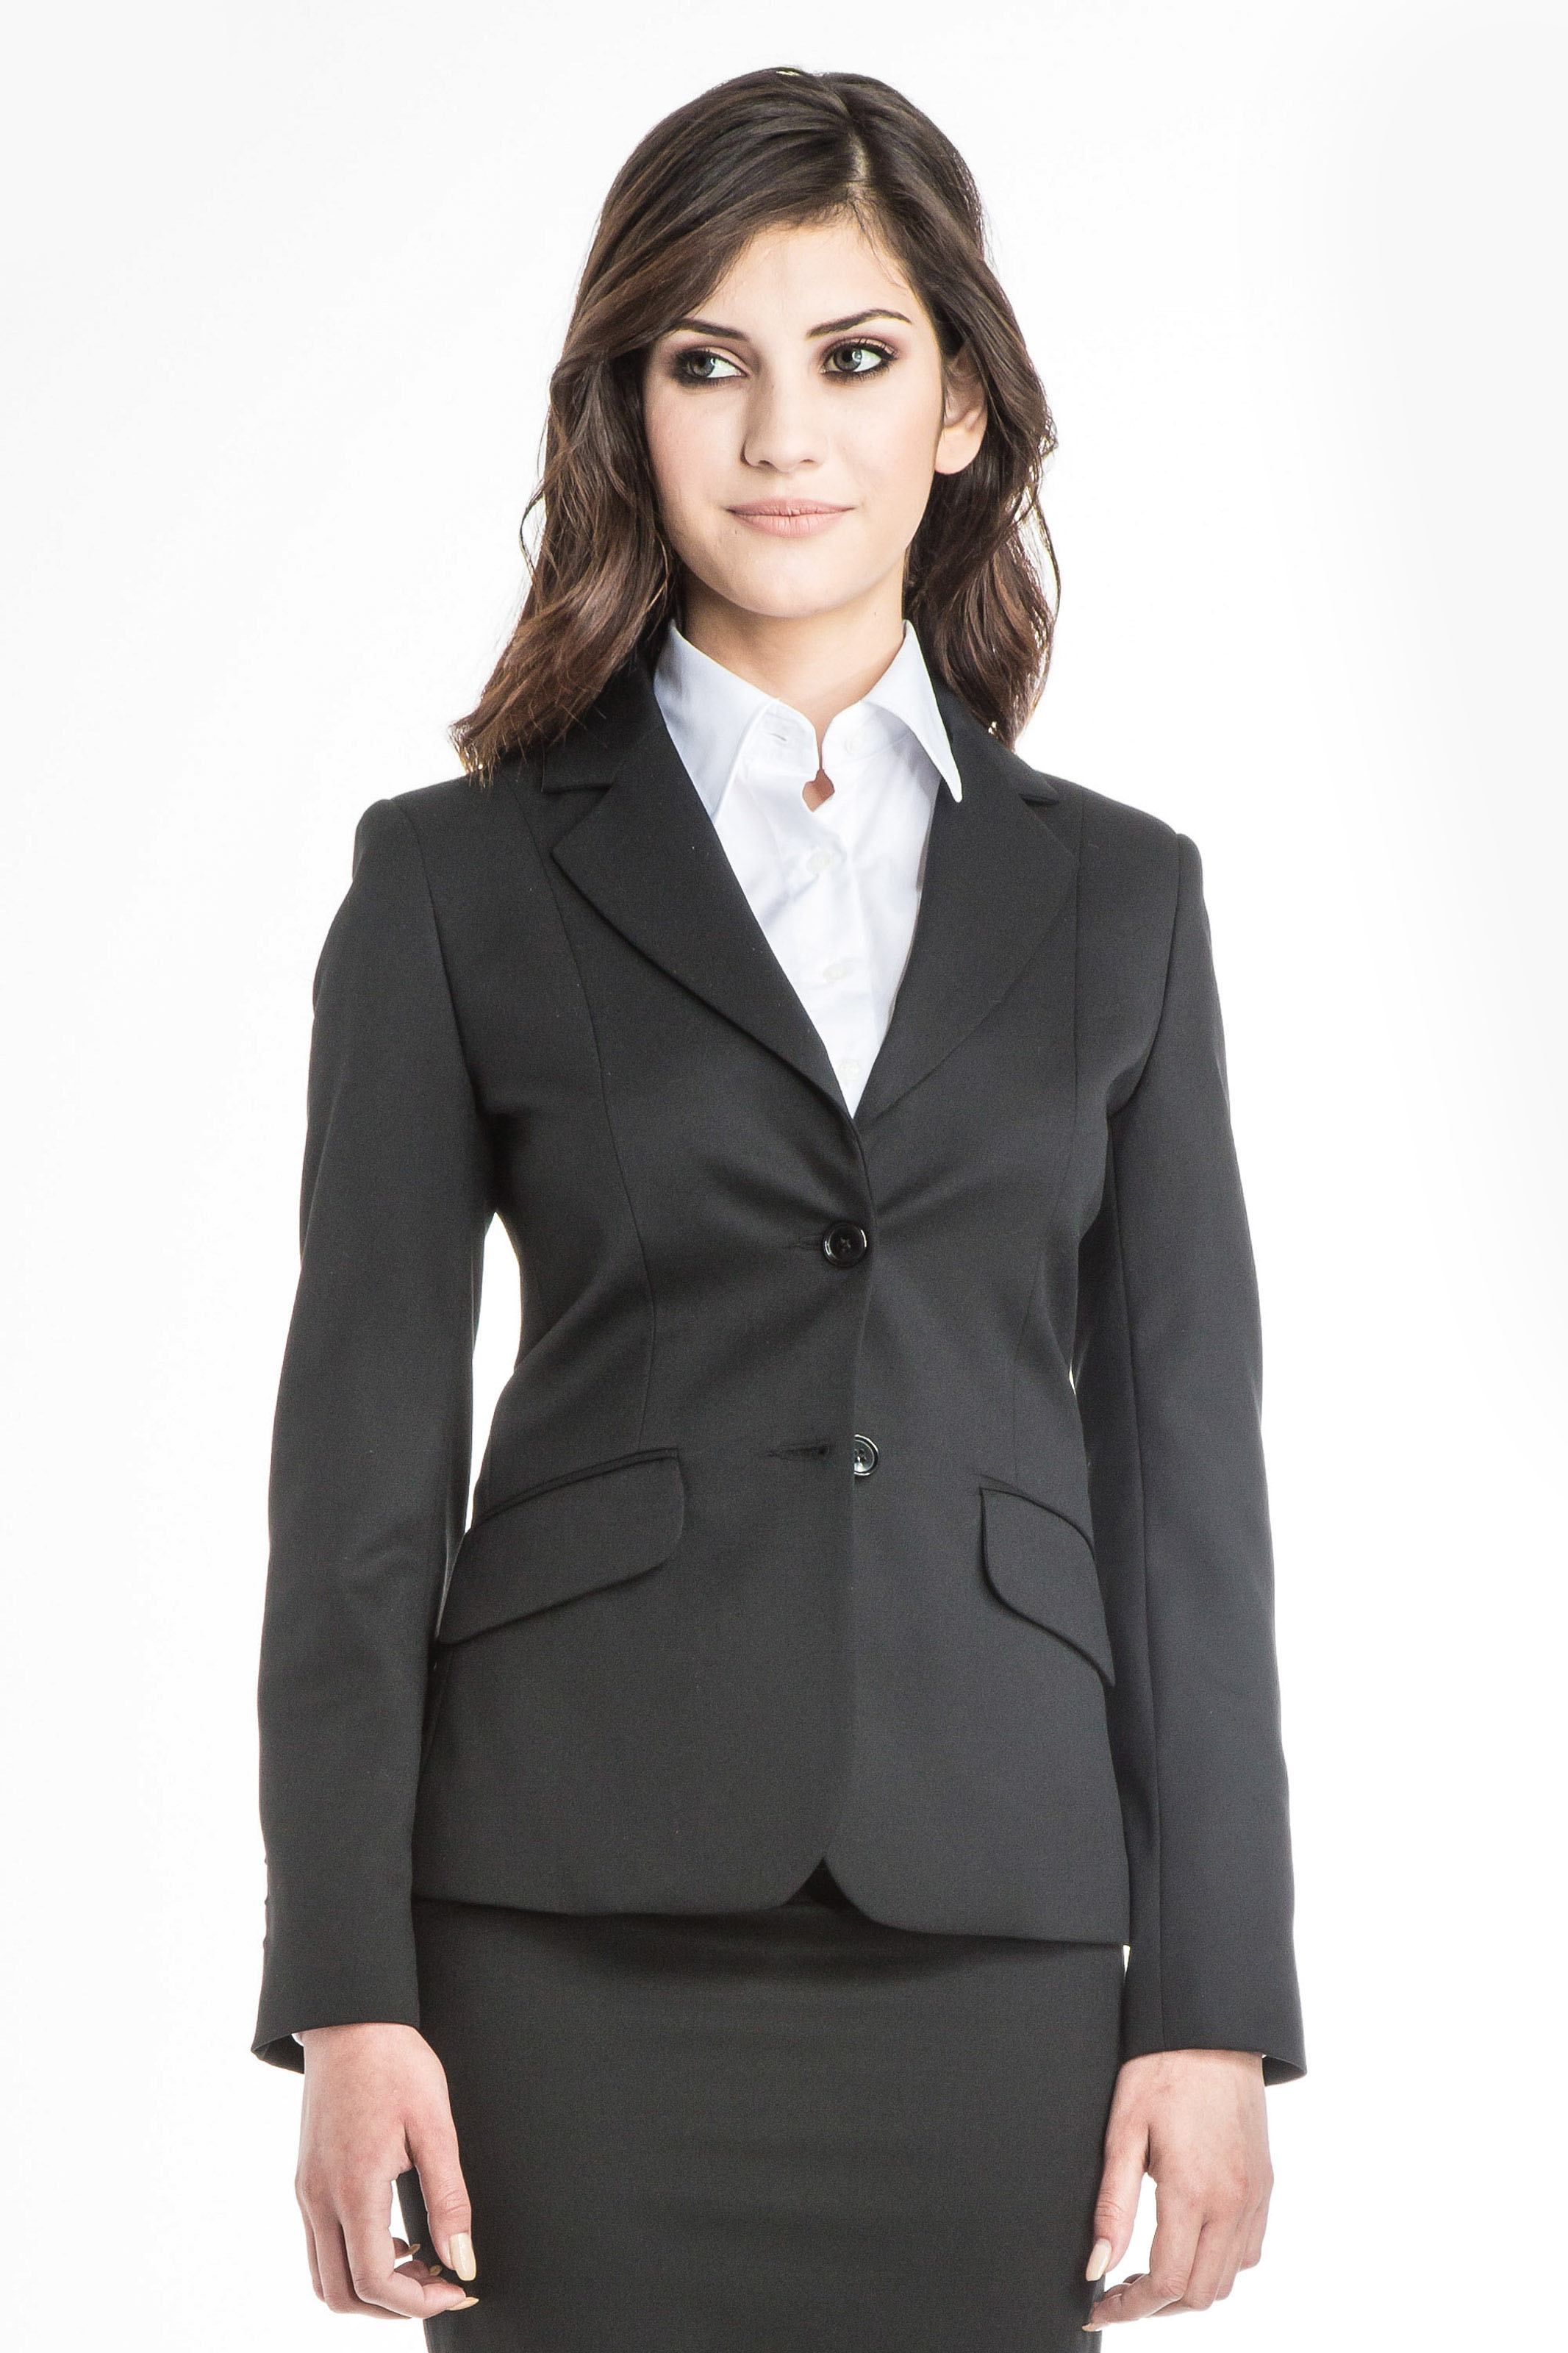 Aris Uniforms-FJ01-Ava Women's Jacket